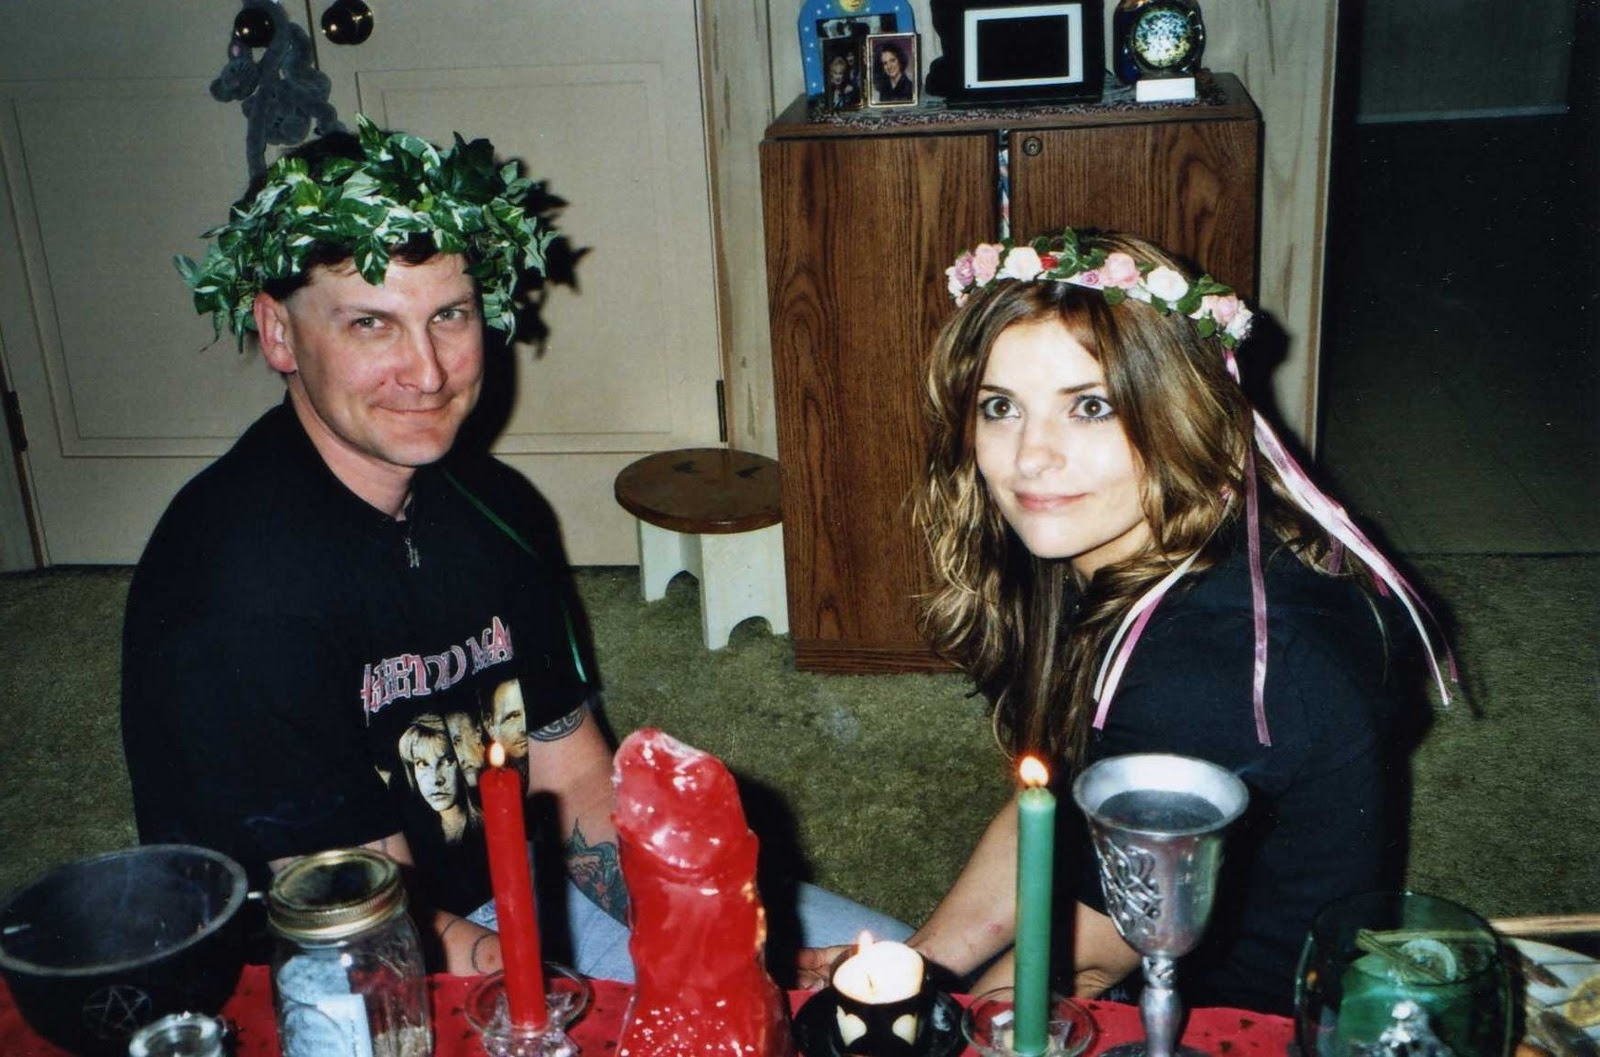 The Wiccan Life: On a Personal Note: Through the Years